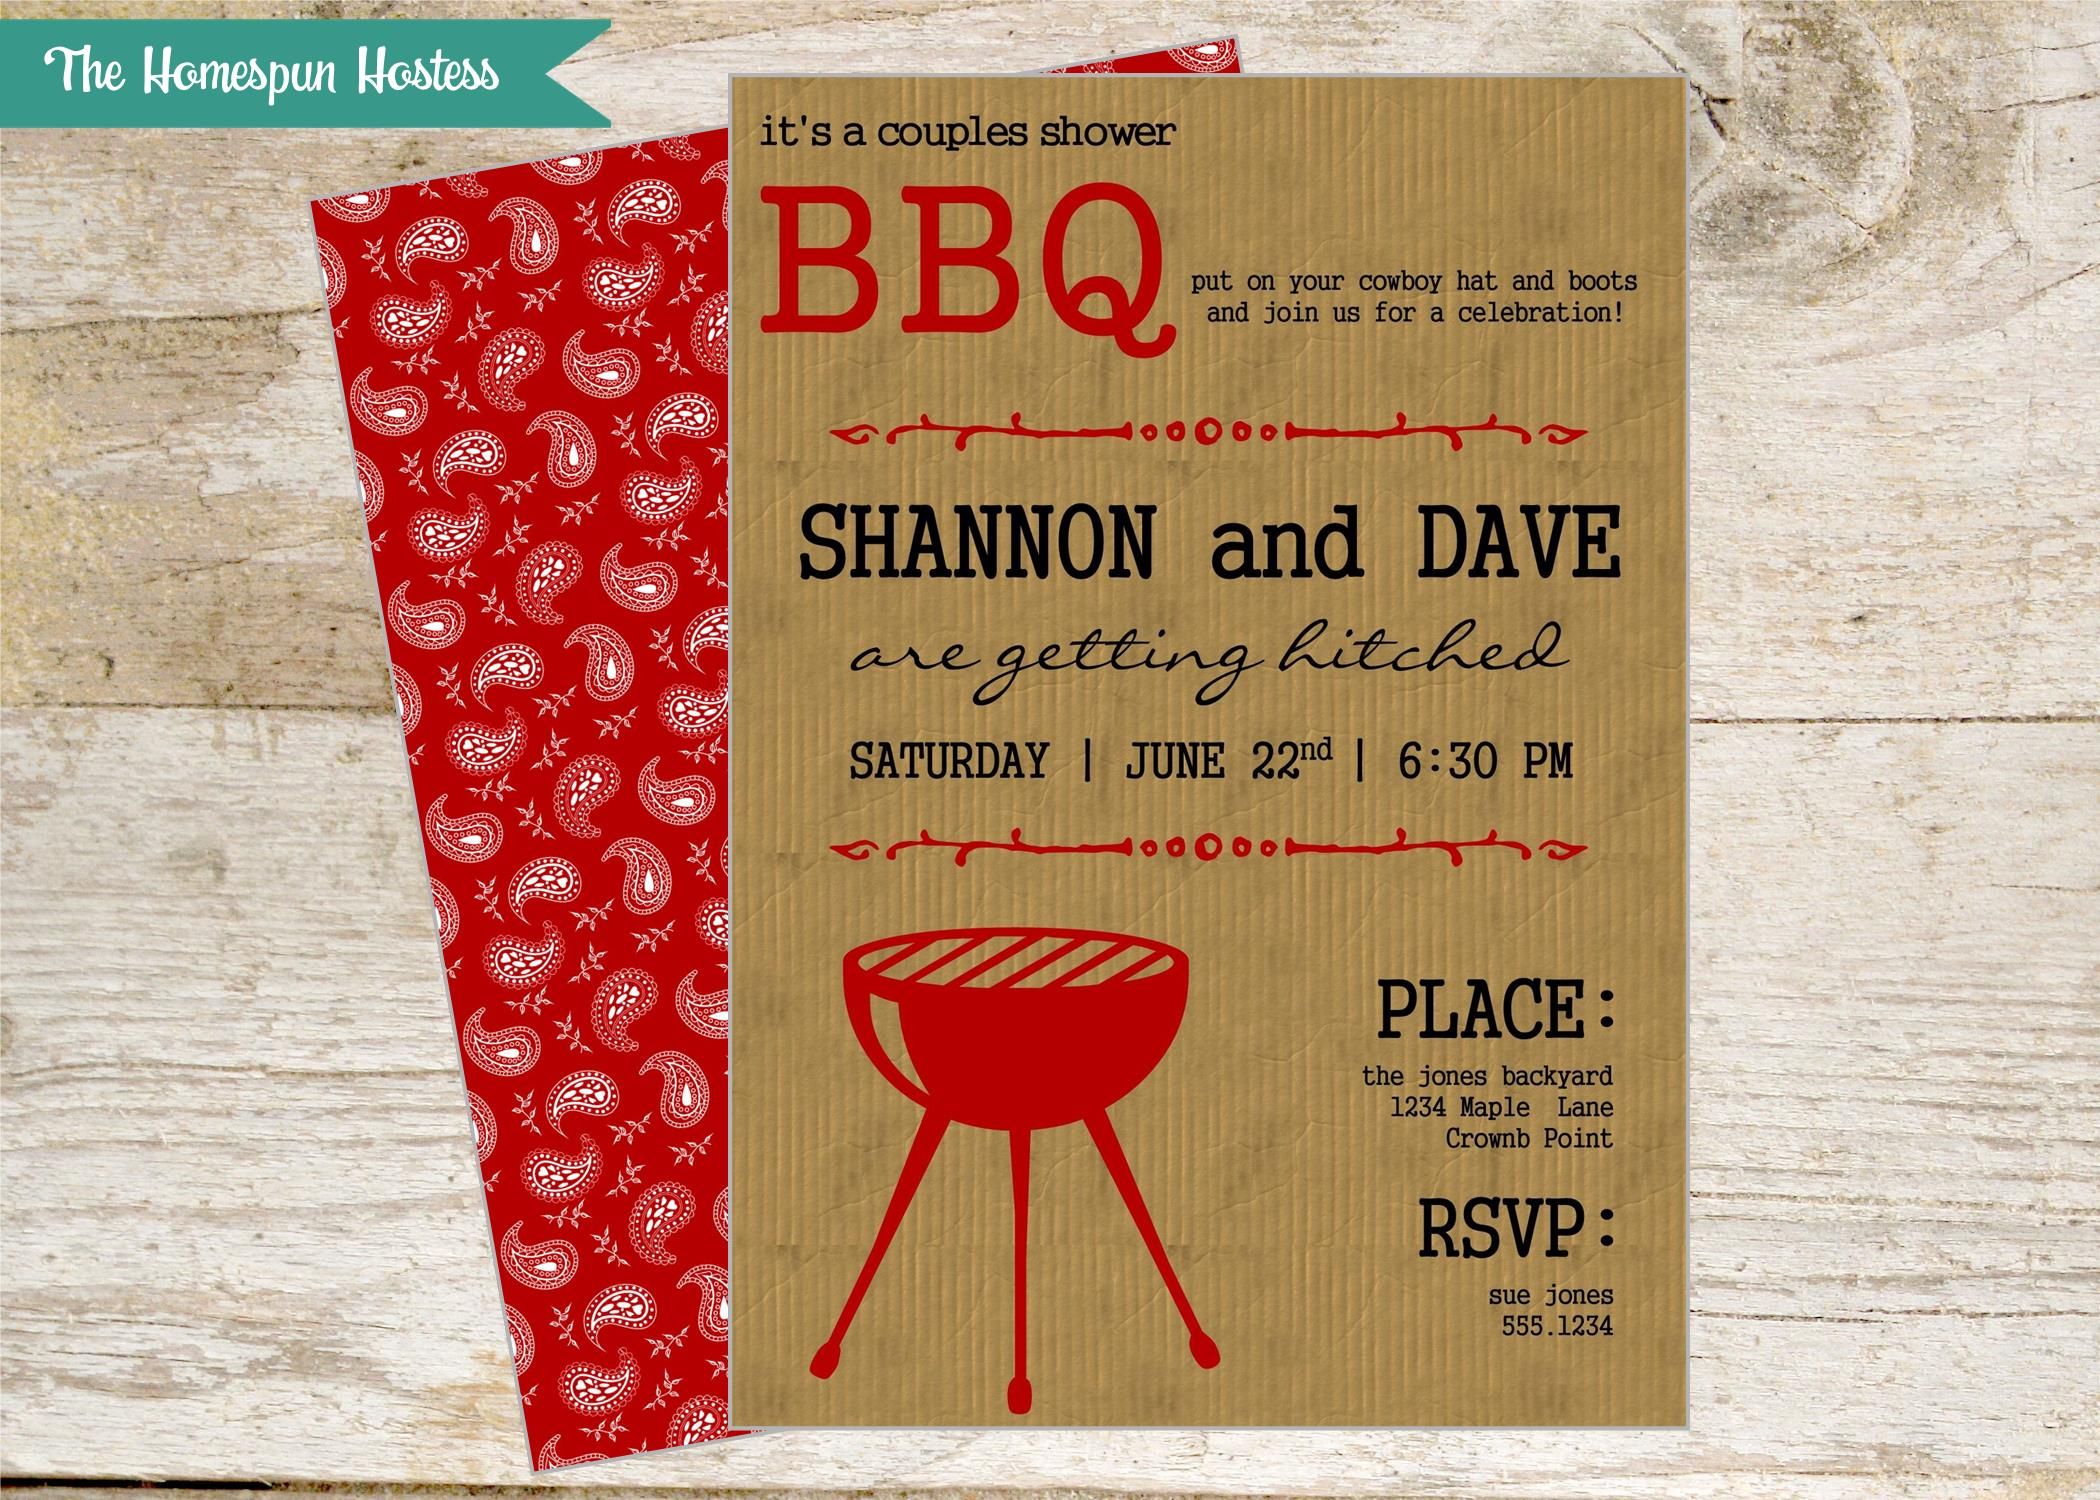 BBQ Rustic Invite Couples Shower or Cook Out | The Homespun Hostess